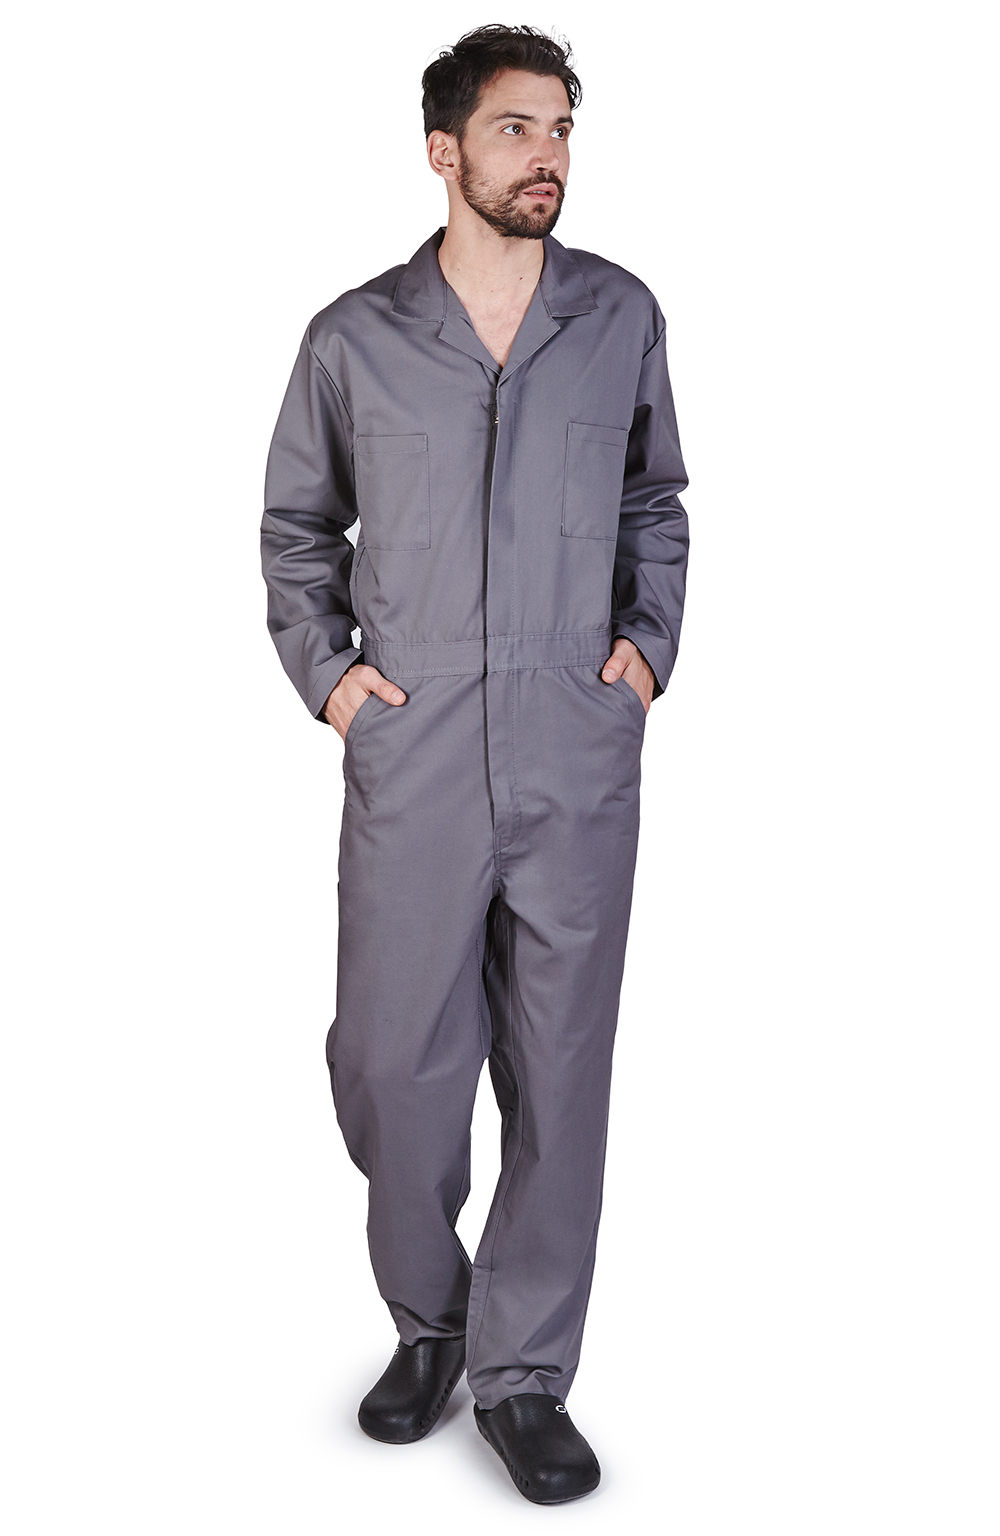 M&M Scrubs FREE SHIPPING Mens Long Sleeve Coverall by